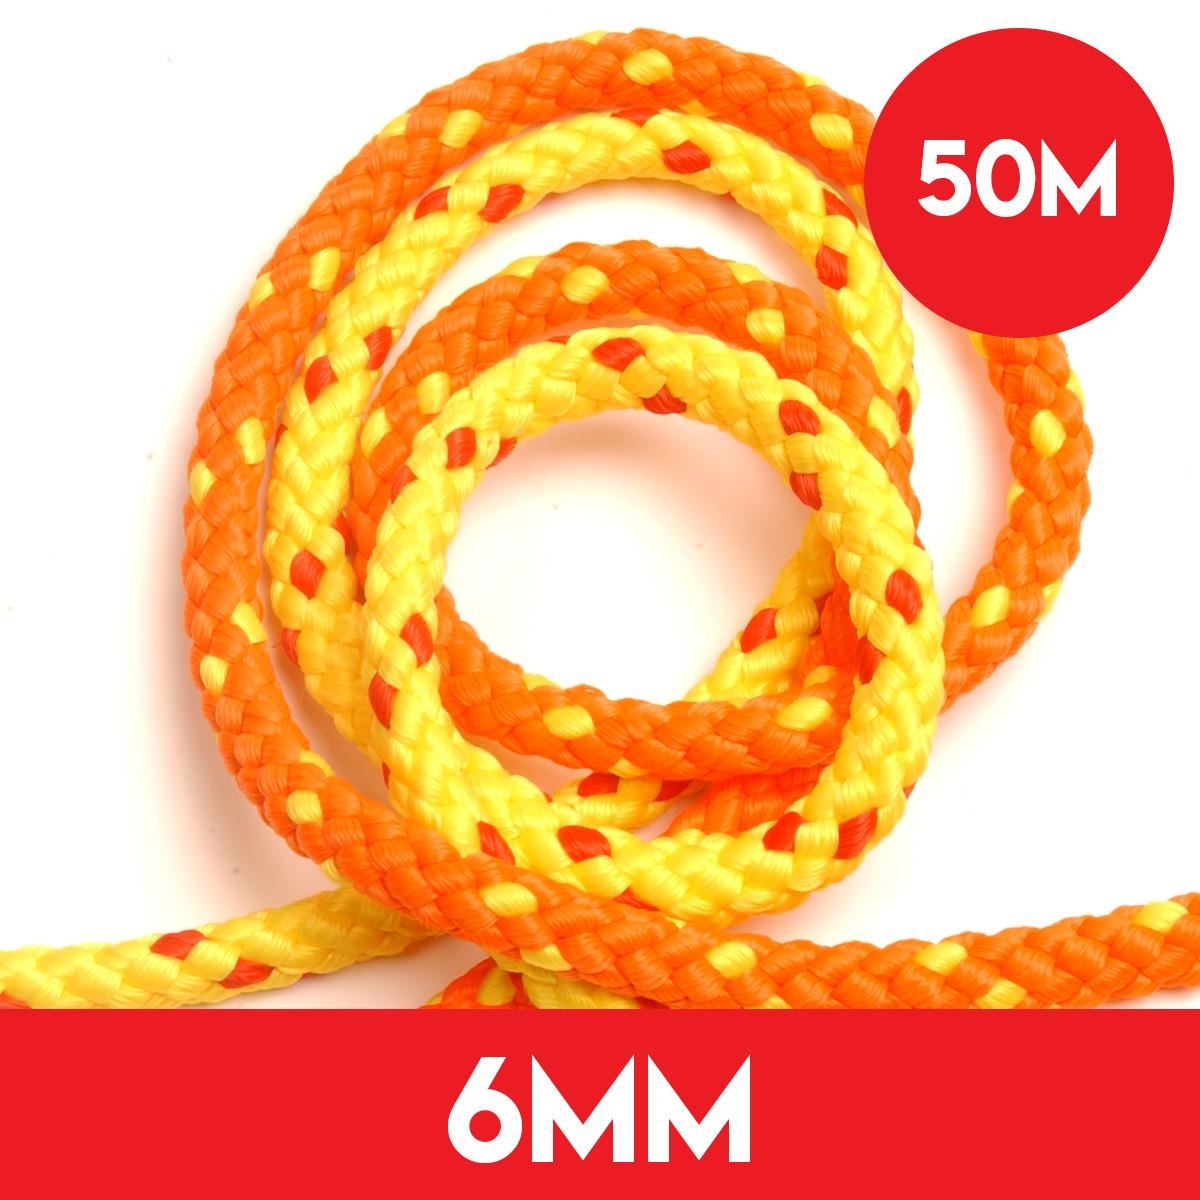 50m of 6mm Floatline Tow Rope